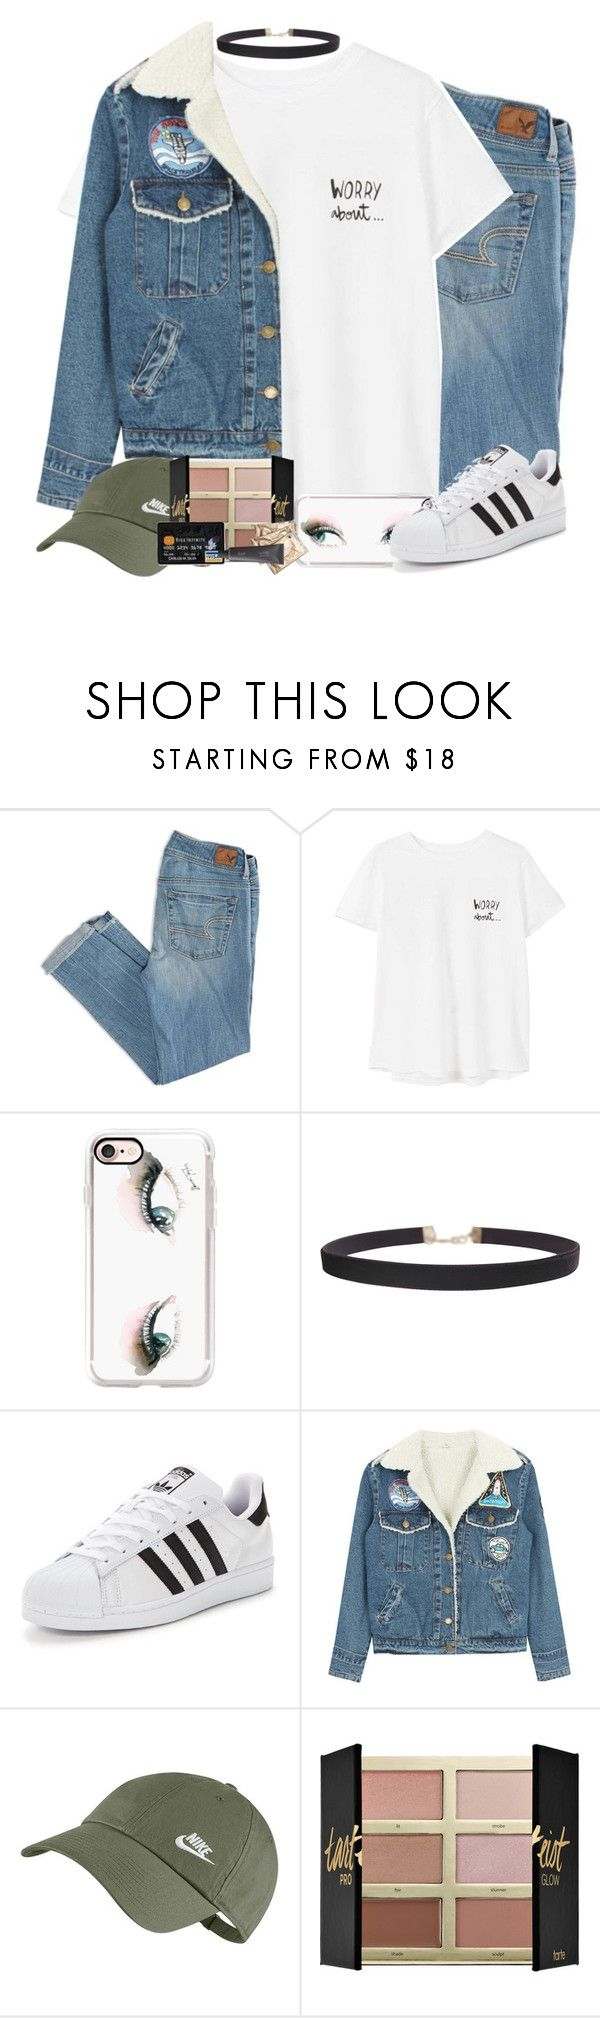 """""""comment a good eyeliner bc i need a new one"""" by camelizabethh ❤ liked on Polyvore featuring American Eagle Outfitters, MANGO, Casetify, Humble Chic, adidas Originals, Retrò, NIKE, tarte and Bite"""